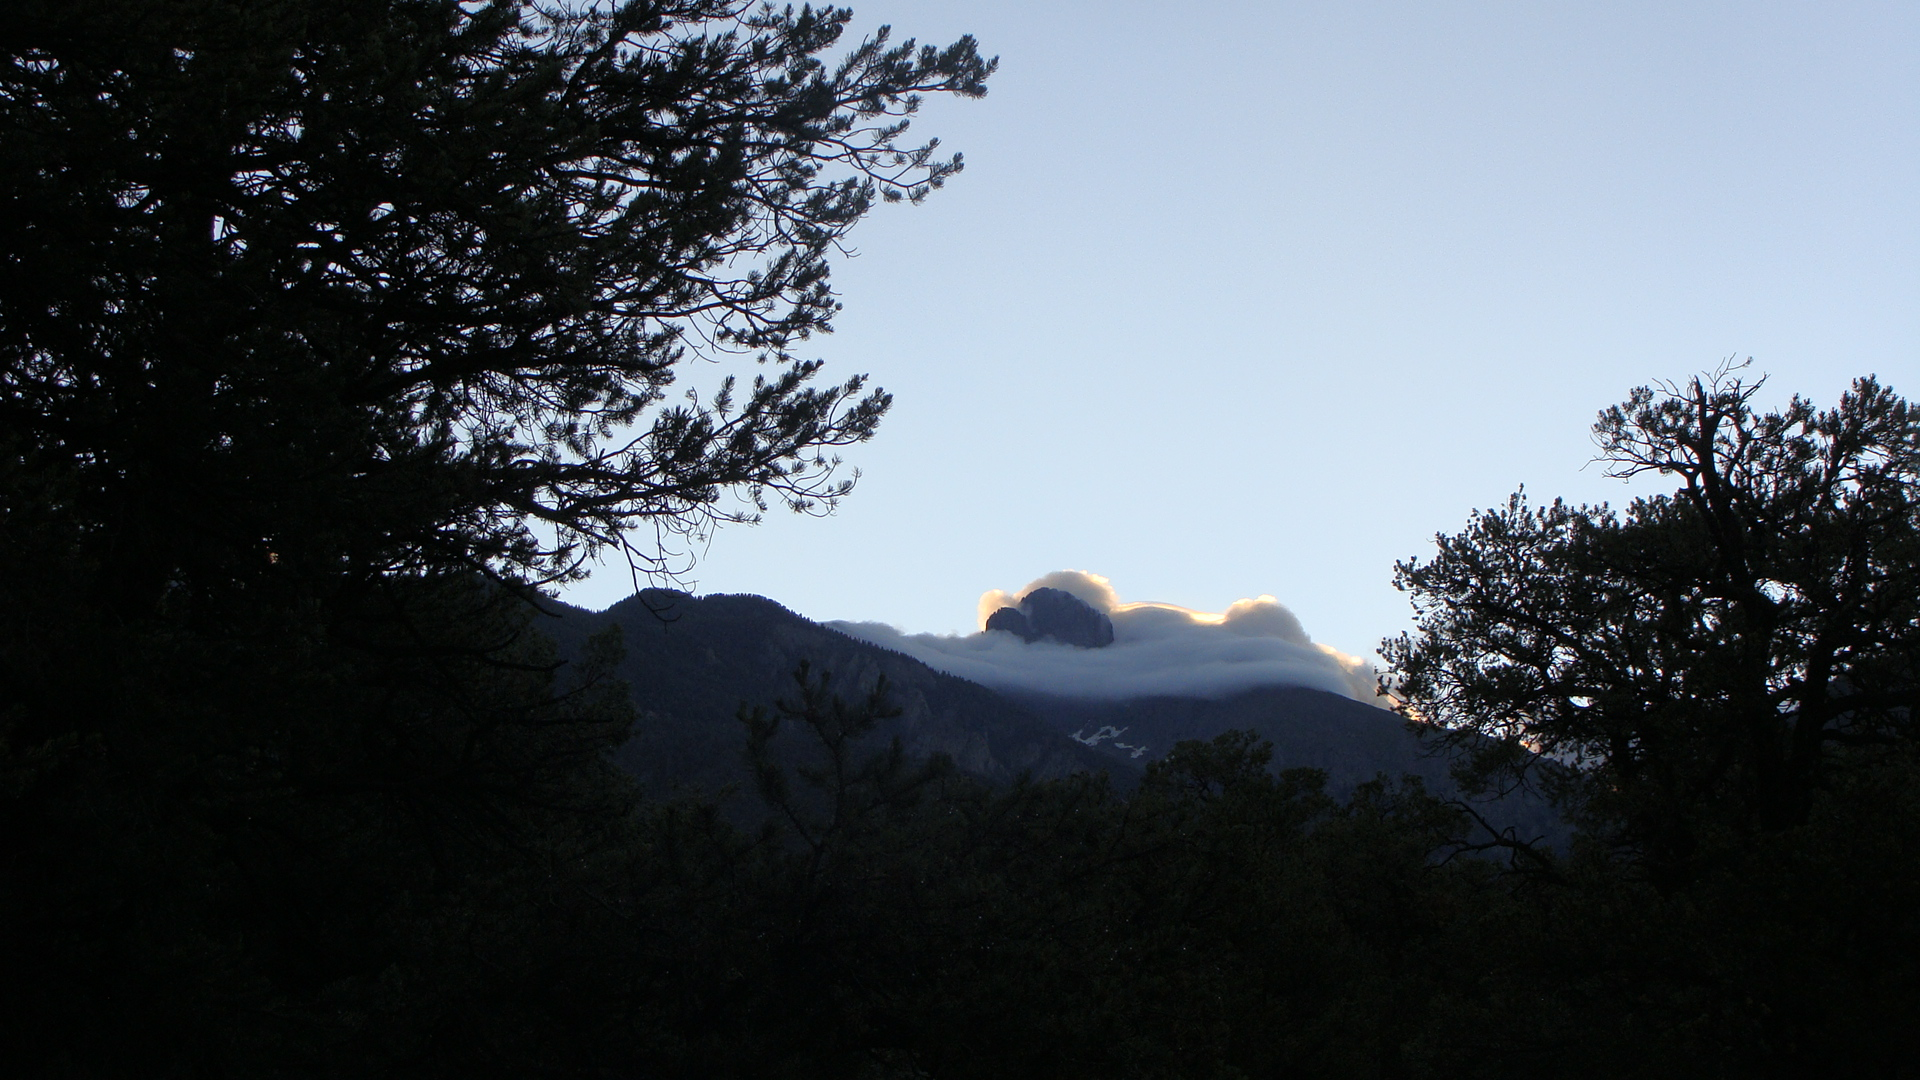 Sometimes clouds obscure part of the mountain ...